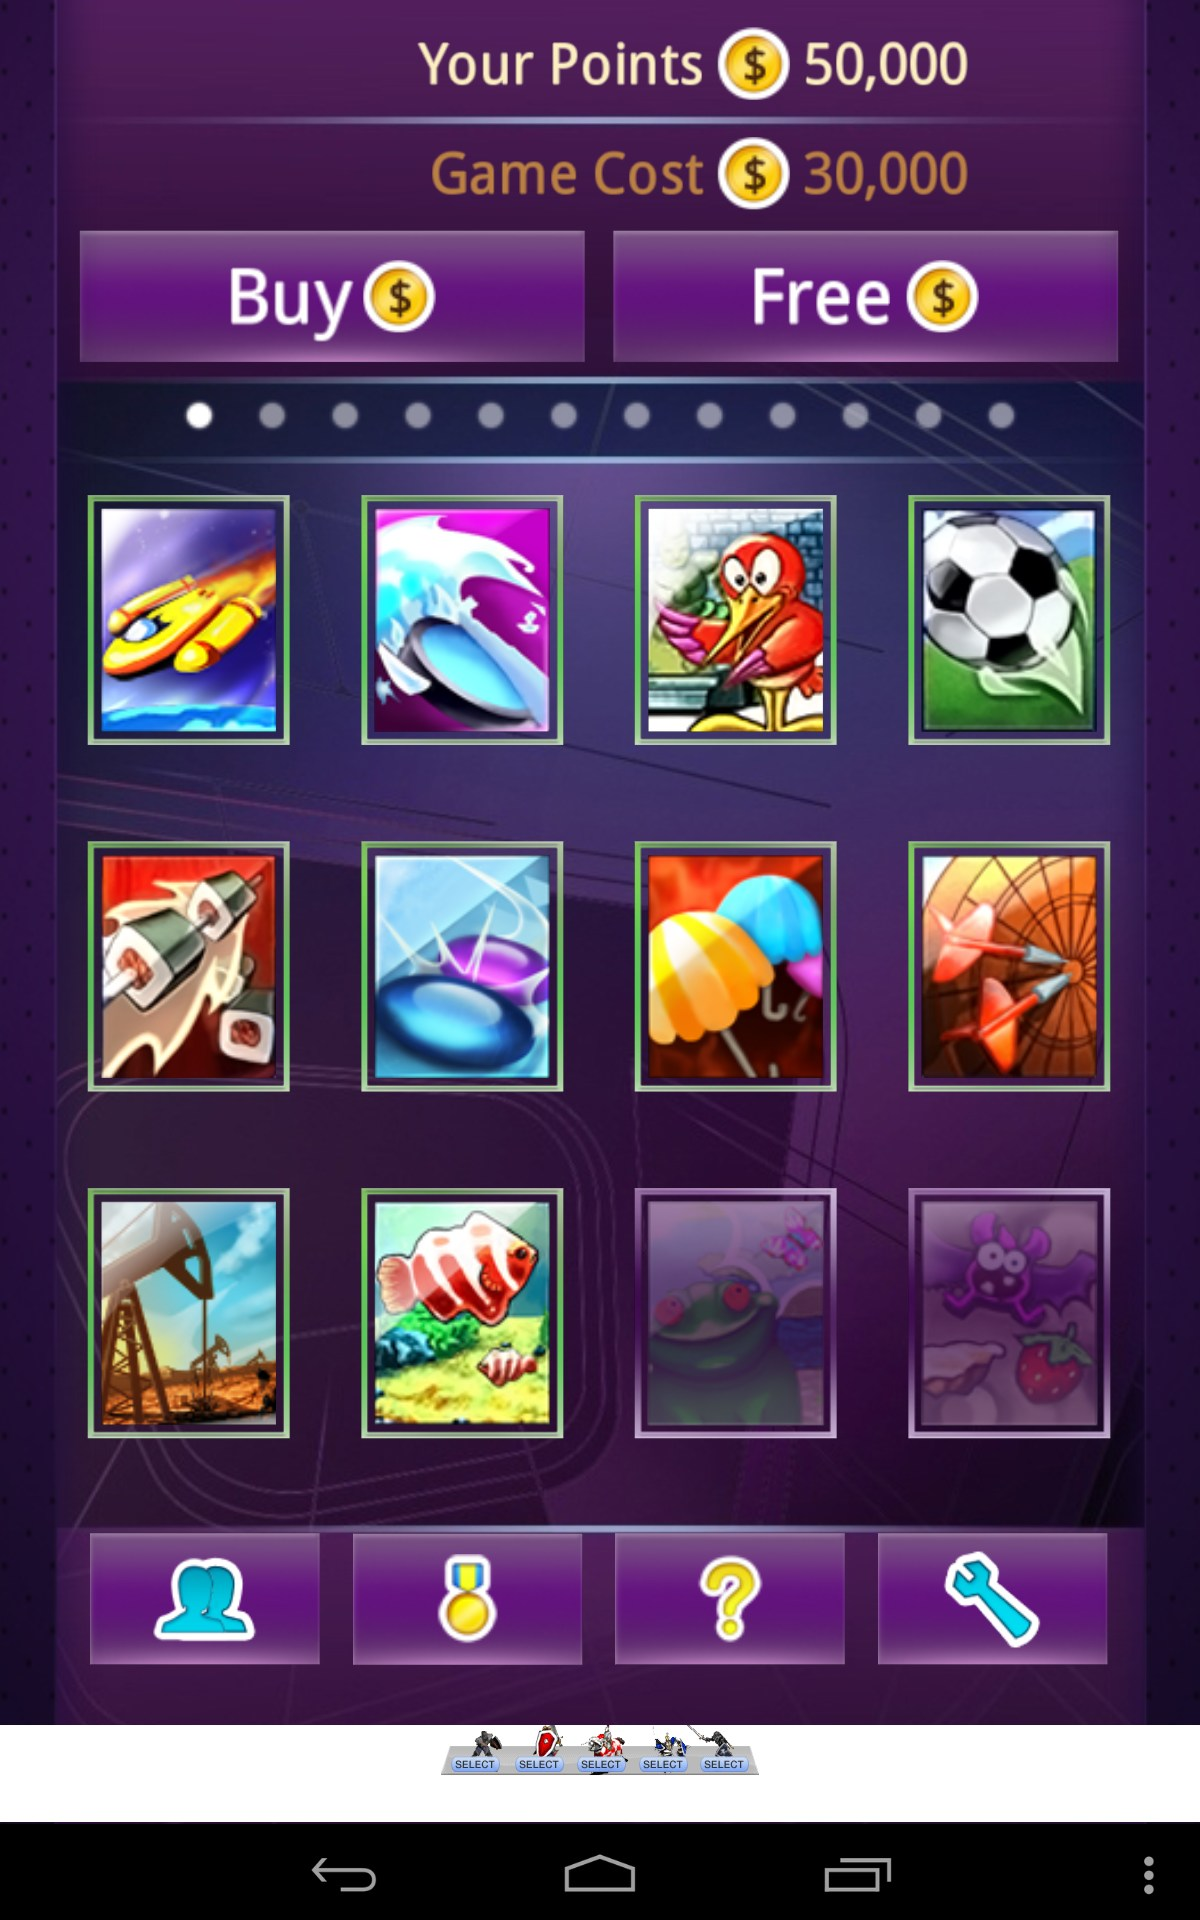 101-in-1 Games 2: Evolution on the App Store